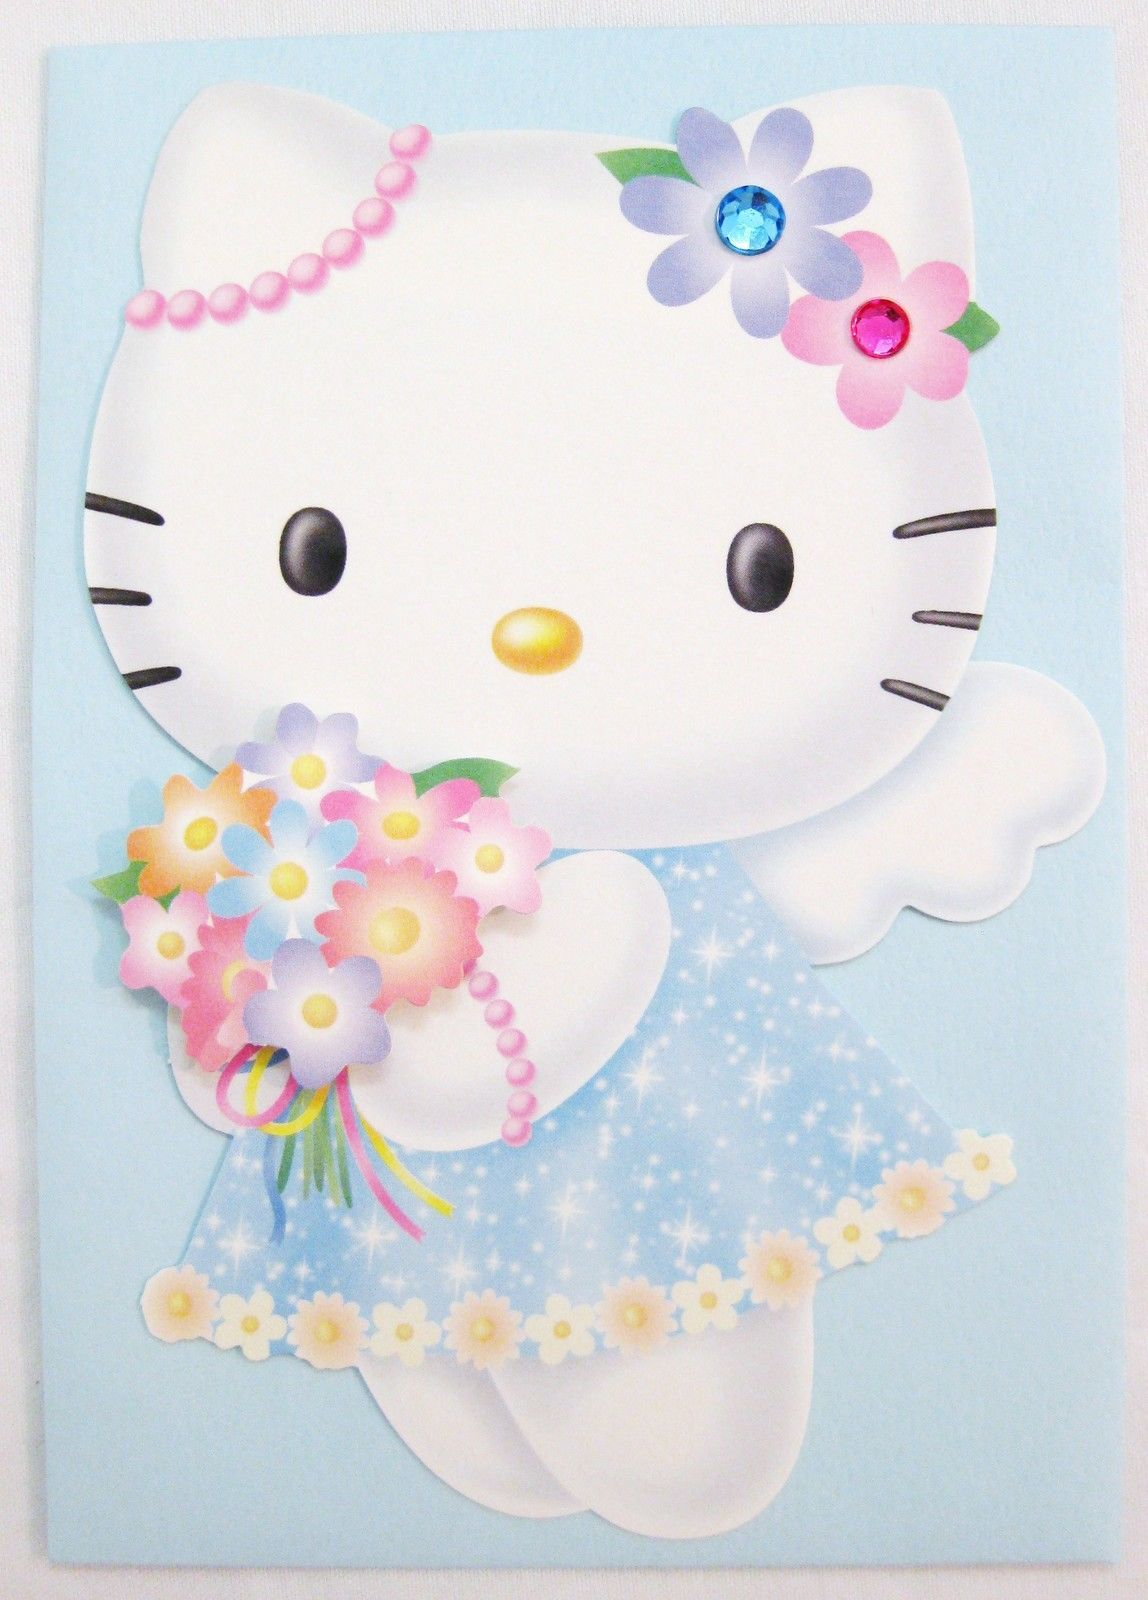 New Hello Kitty Key Chain Modelling Of The Angel The Bell Key Chain